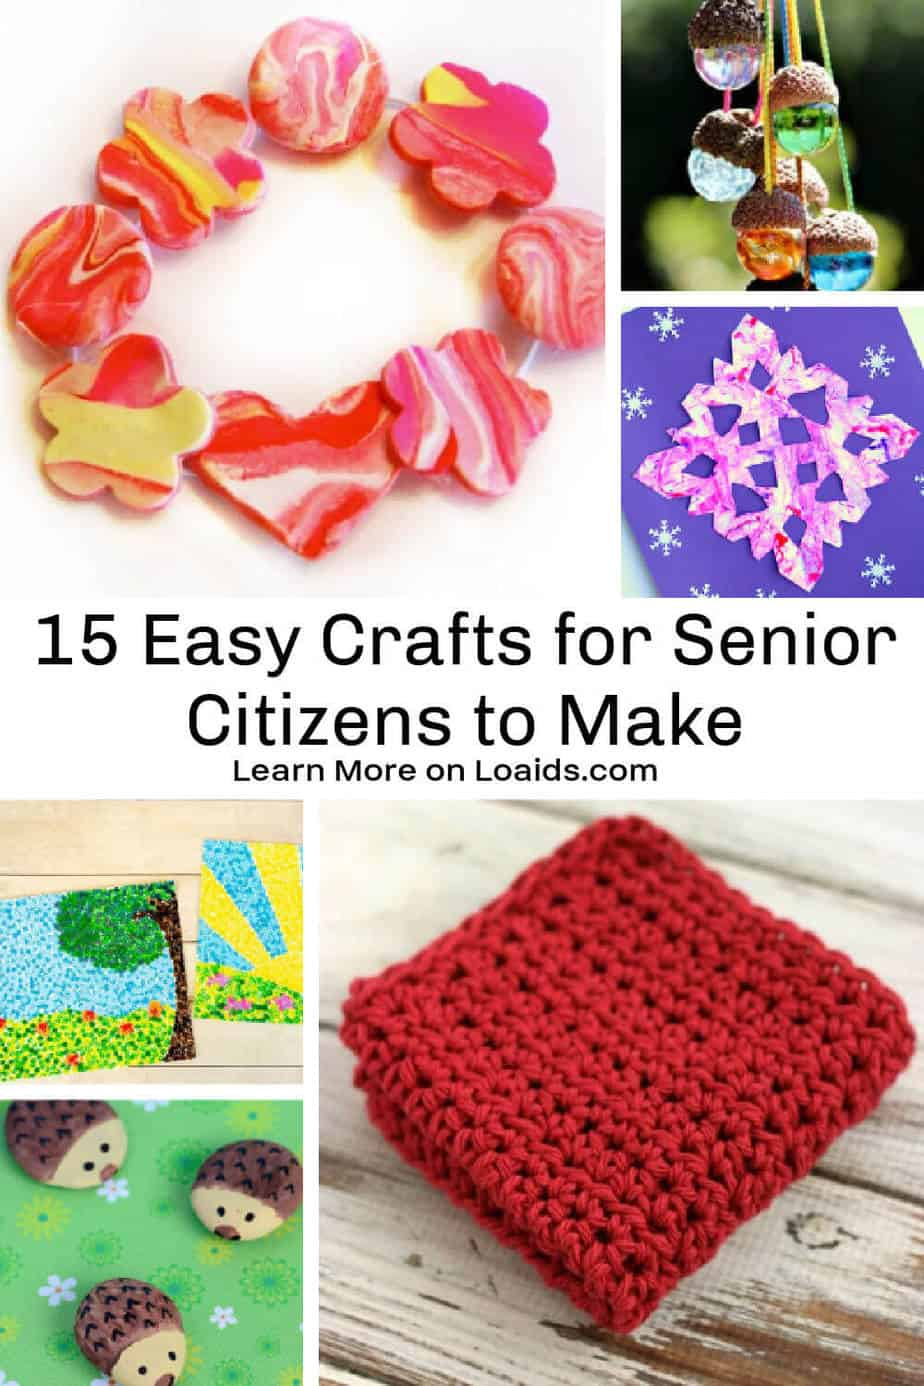 Want to try some fun elderly crafts? We give you 15 easy ideas that not only seniors can make but everyone! Check them out and try them yourself.